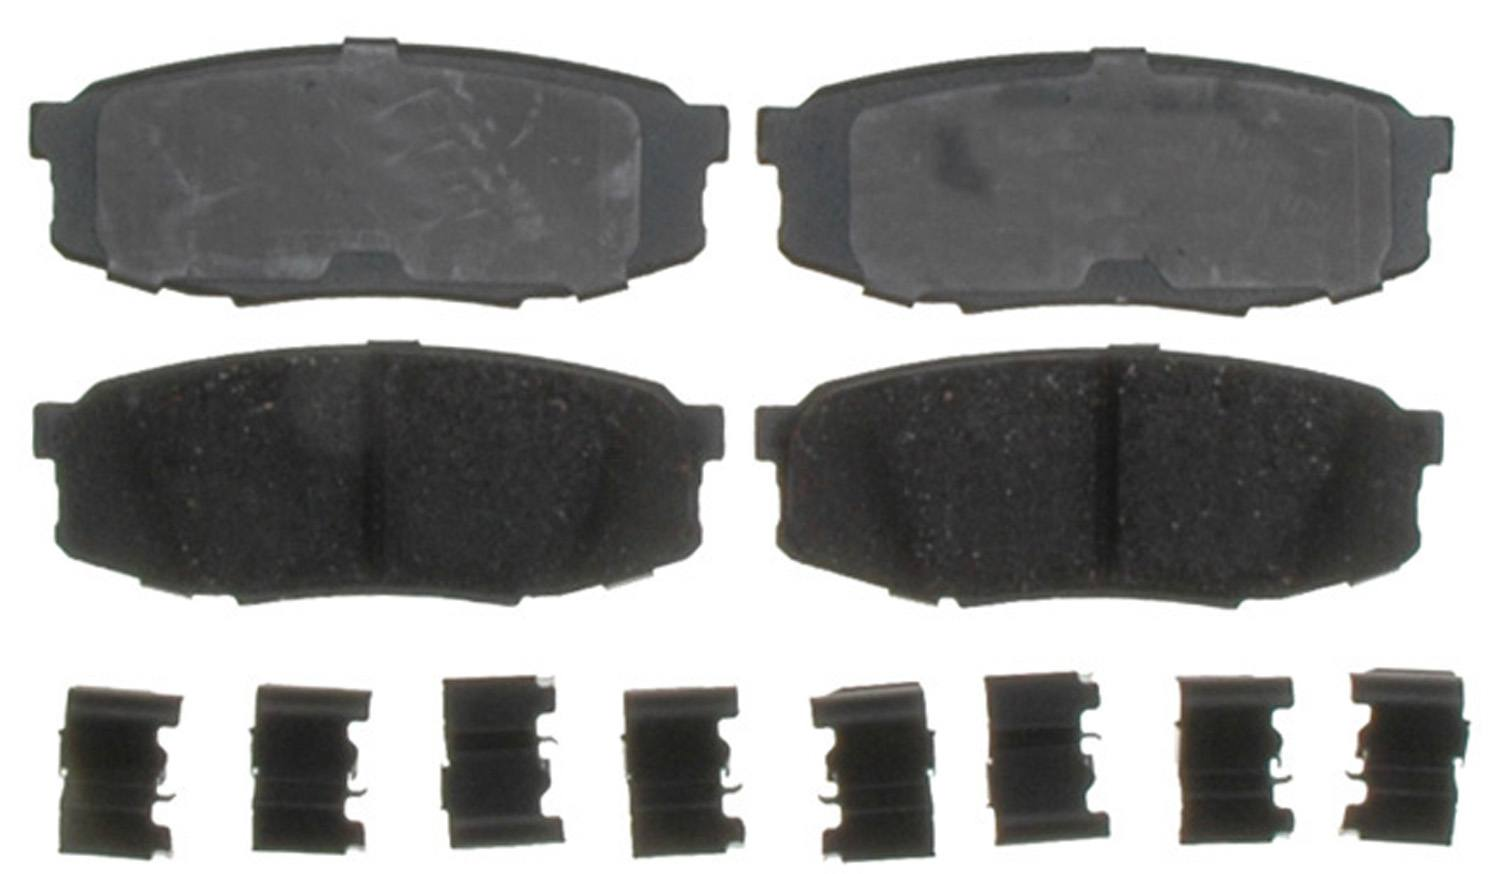 ACDELCO GOLD/PROFESSIONAL BRAKES - Ceramic Disc Brake Pad (Rear) - ADU 17D1304CH